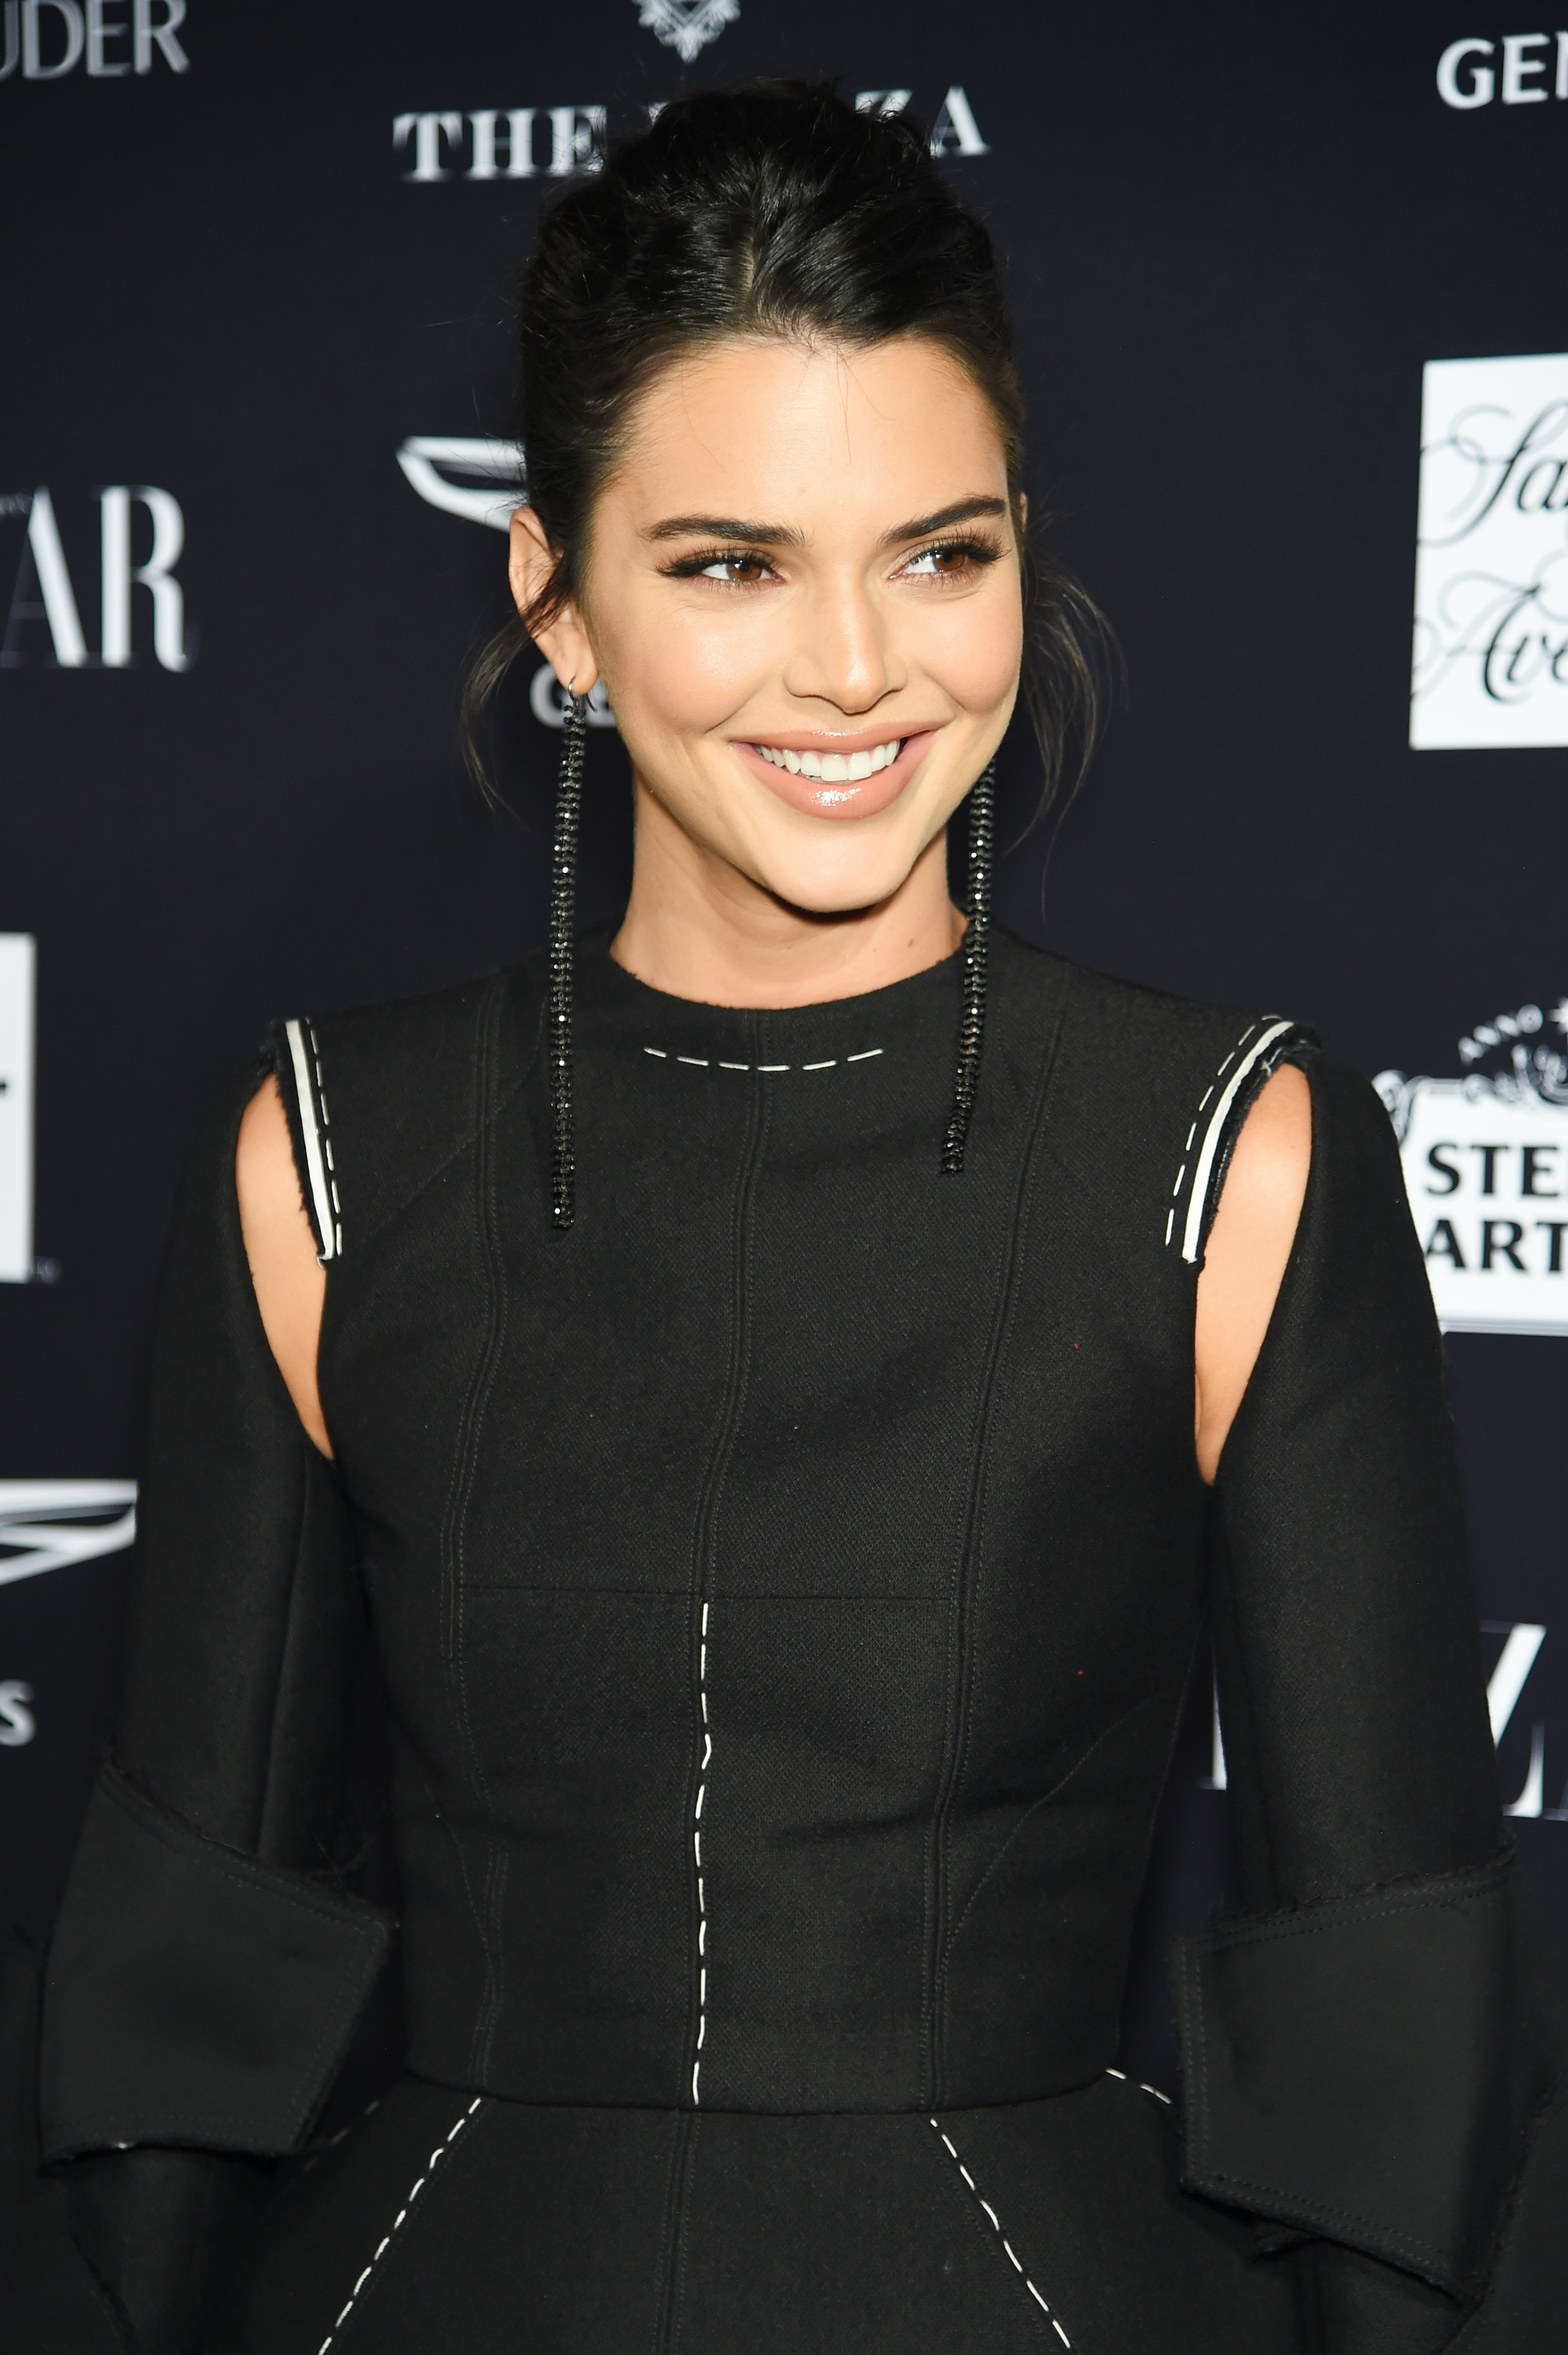 Kendall Jenner Teased Her Sisters Halloween Costumes Are